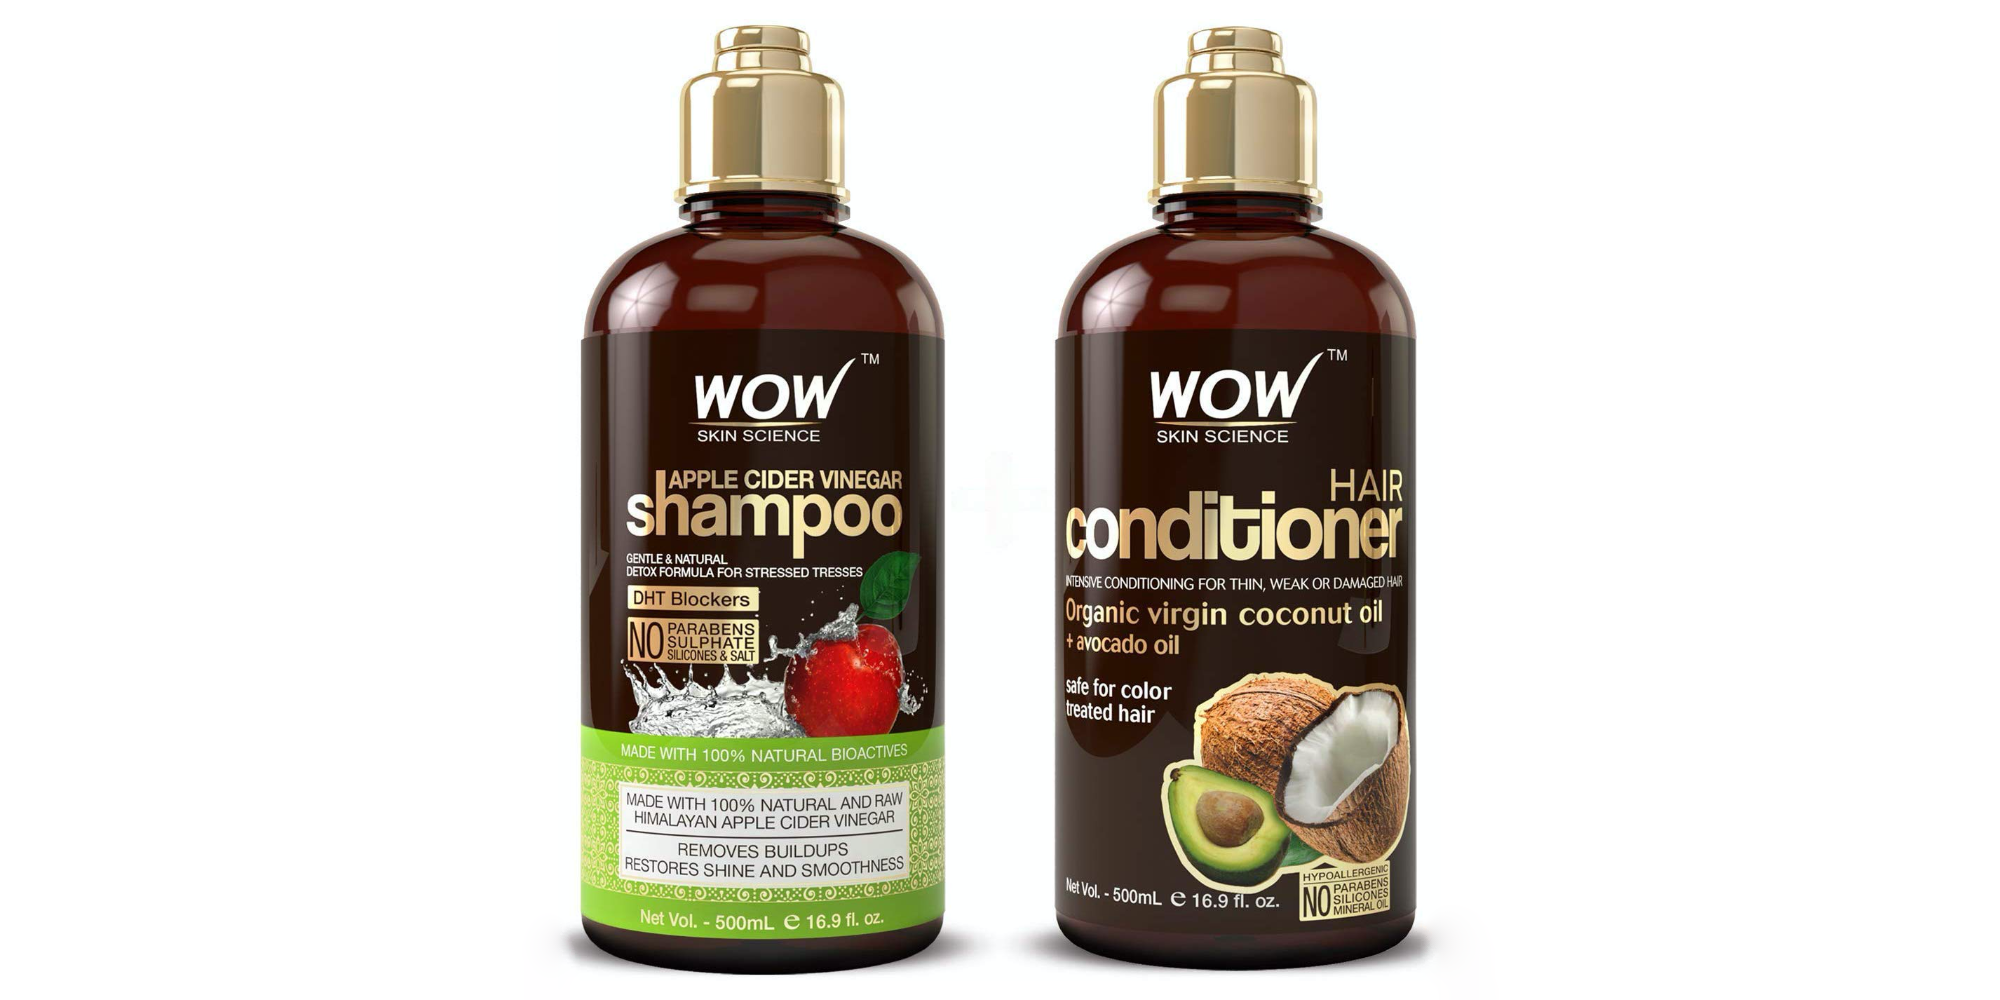 Save 33% on this best-selling apple cider vinegar shampoo set, now at $19.50 - 9to5Toys